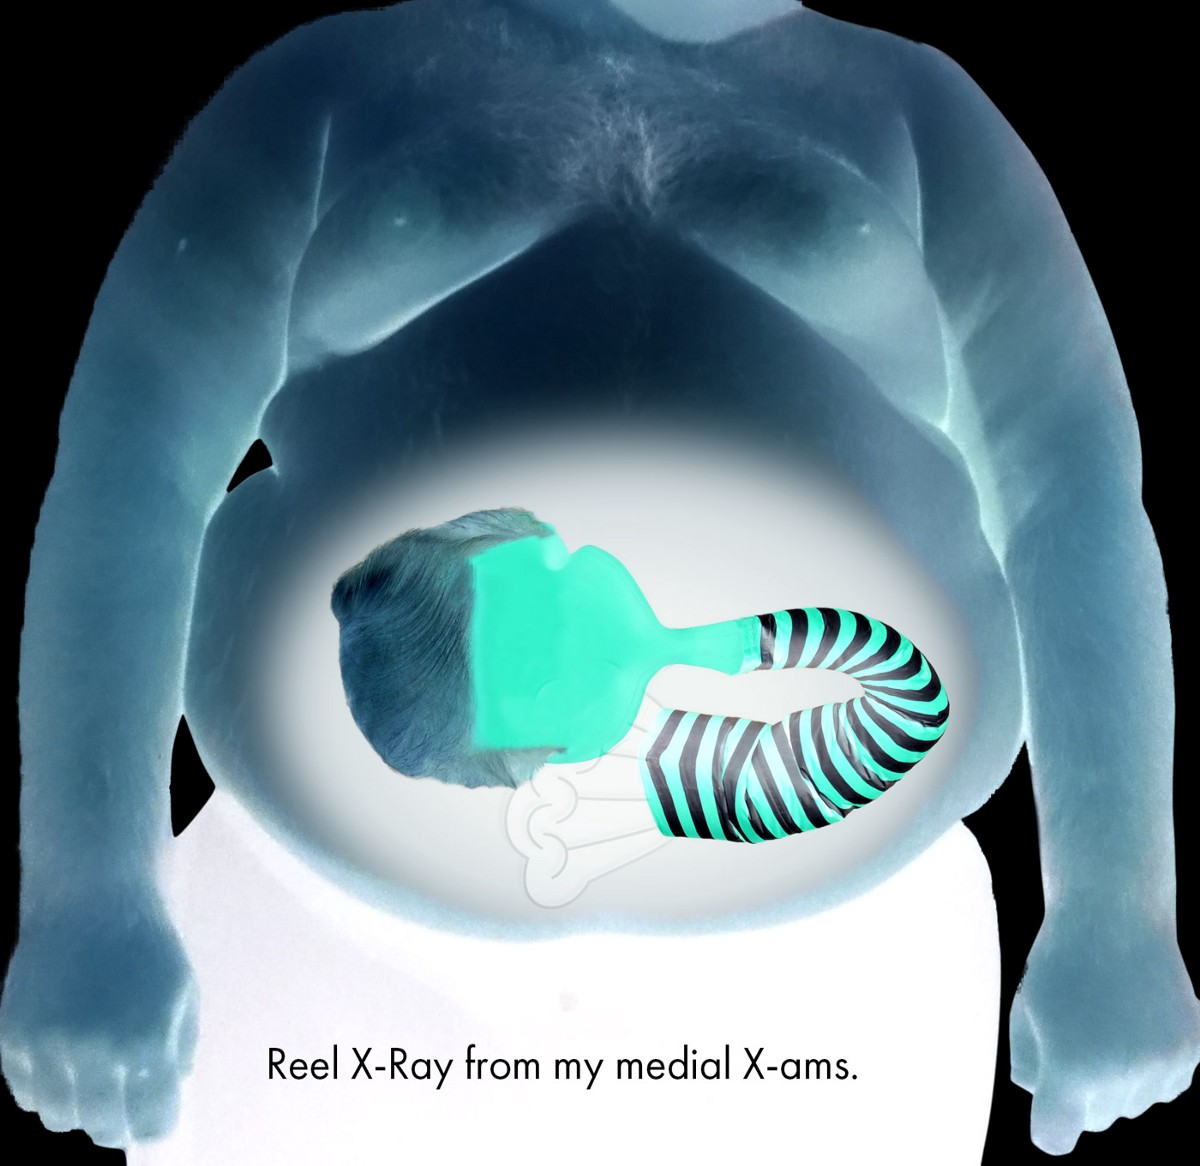 X-Ray of Drumpf's gut to verify his claims. (Balls X-Ray not shown.)